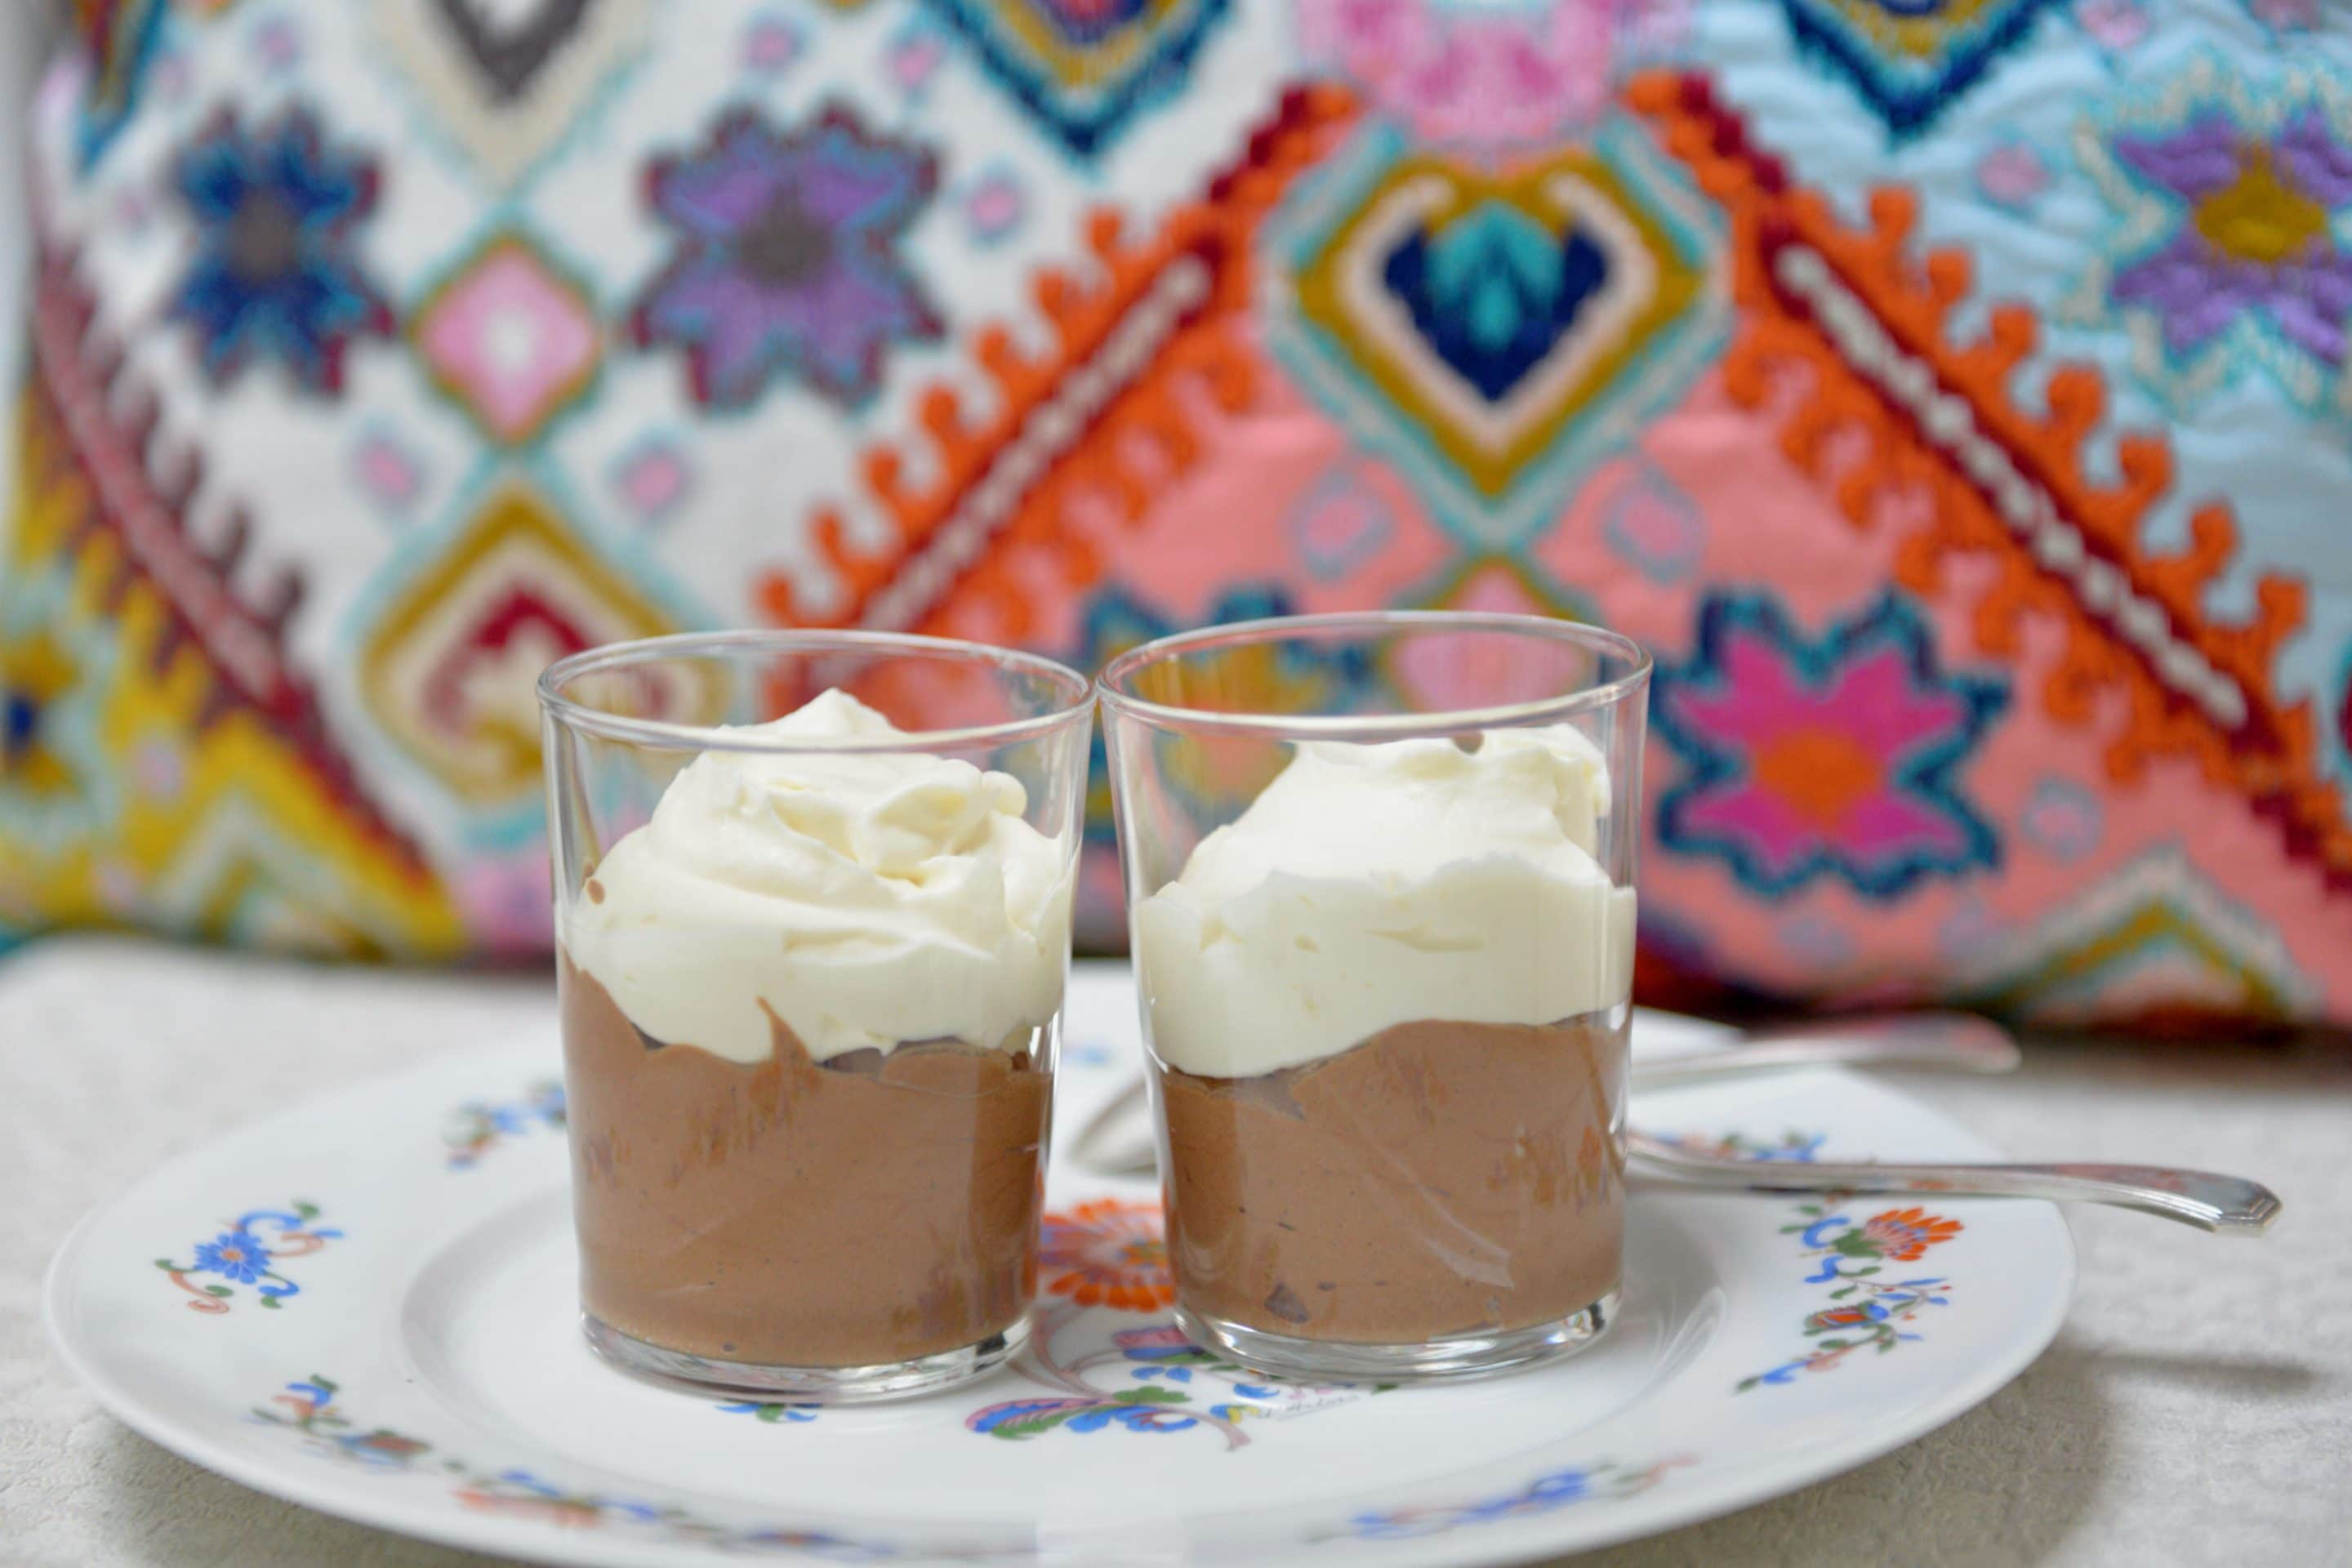 Double chocolate mousse my way